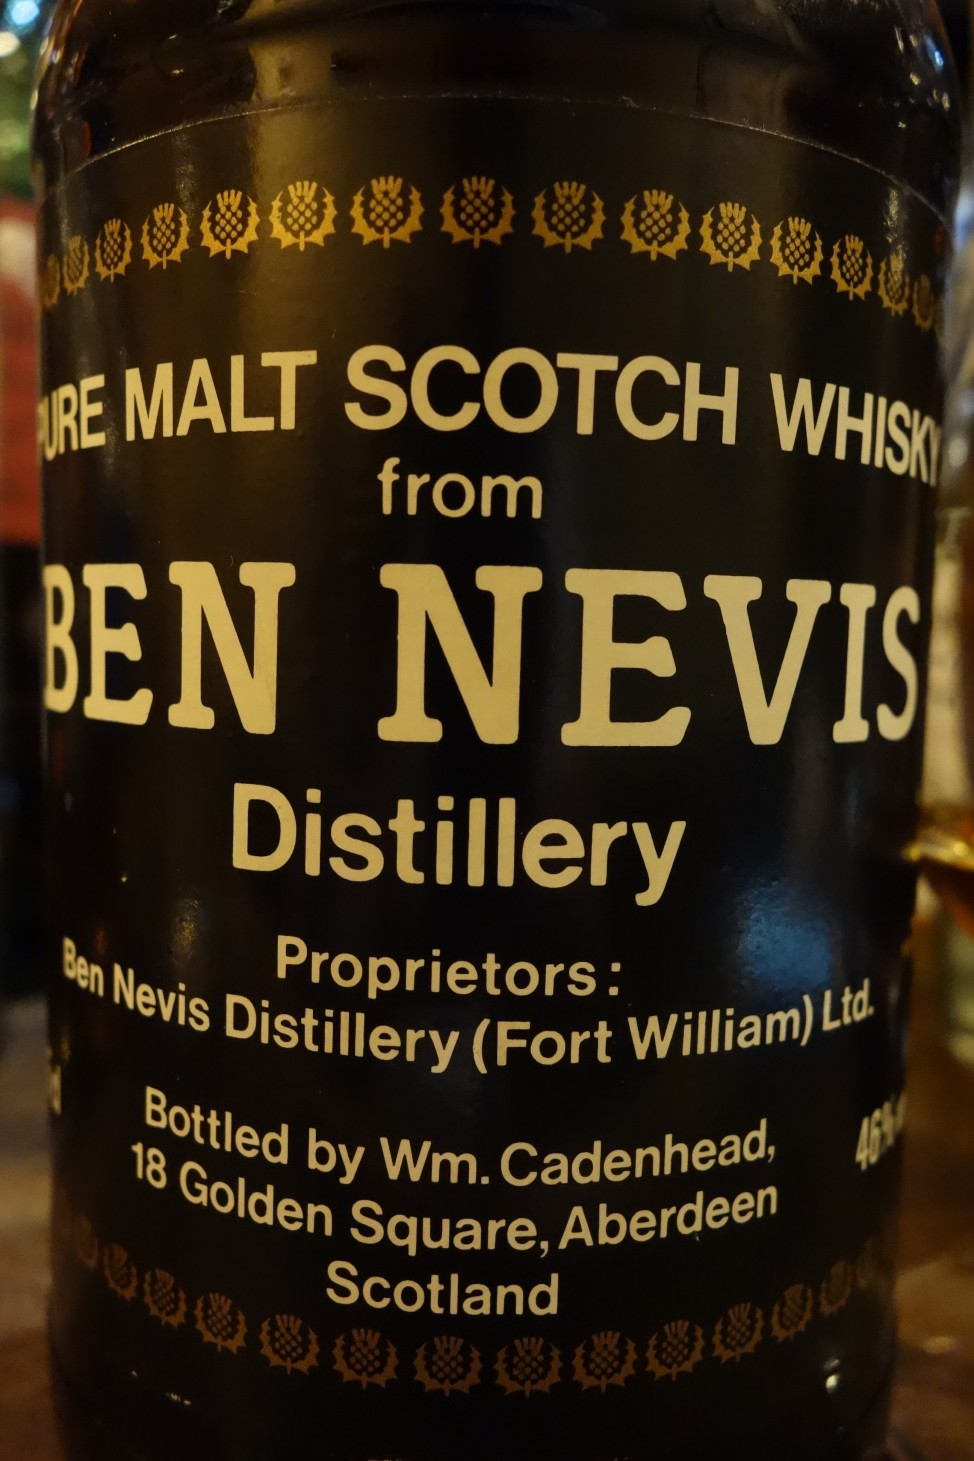 ベンネヴィス BENNEVIS 19yo CADENHEAD Black Dumpy Bottle